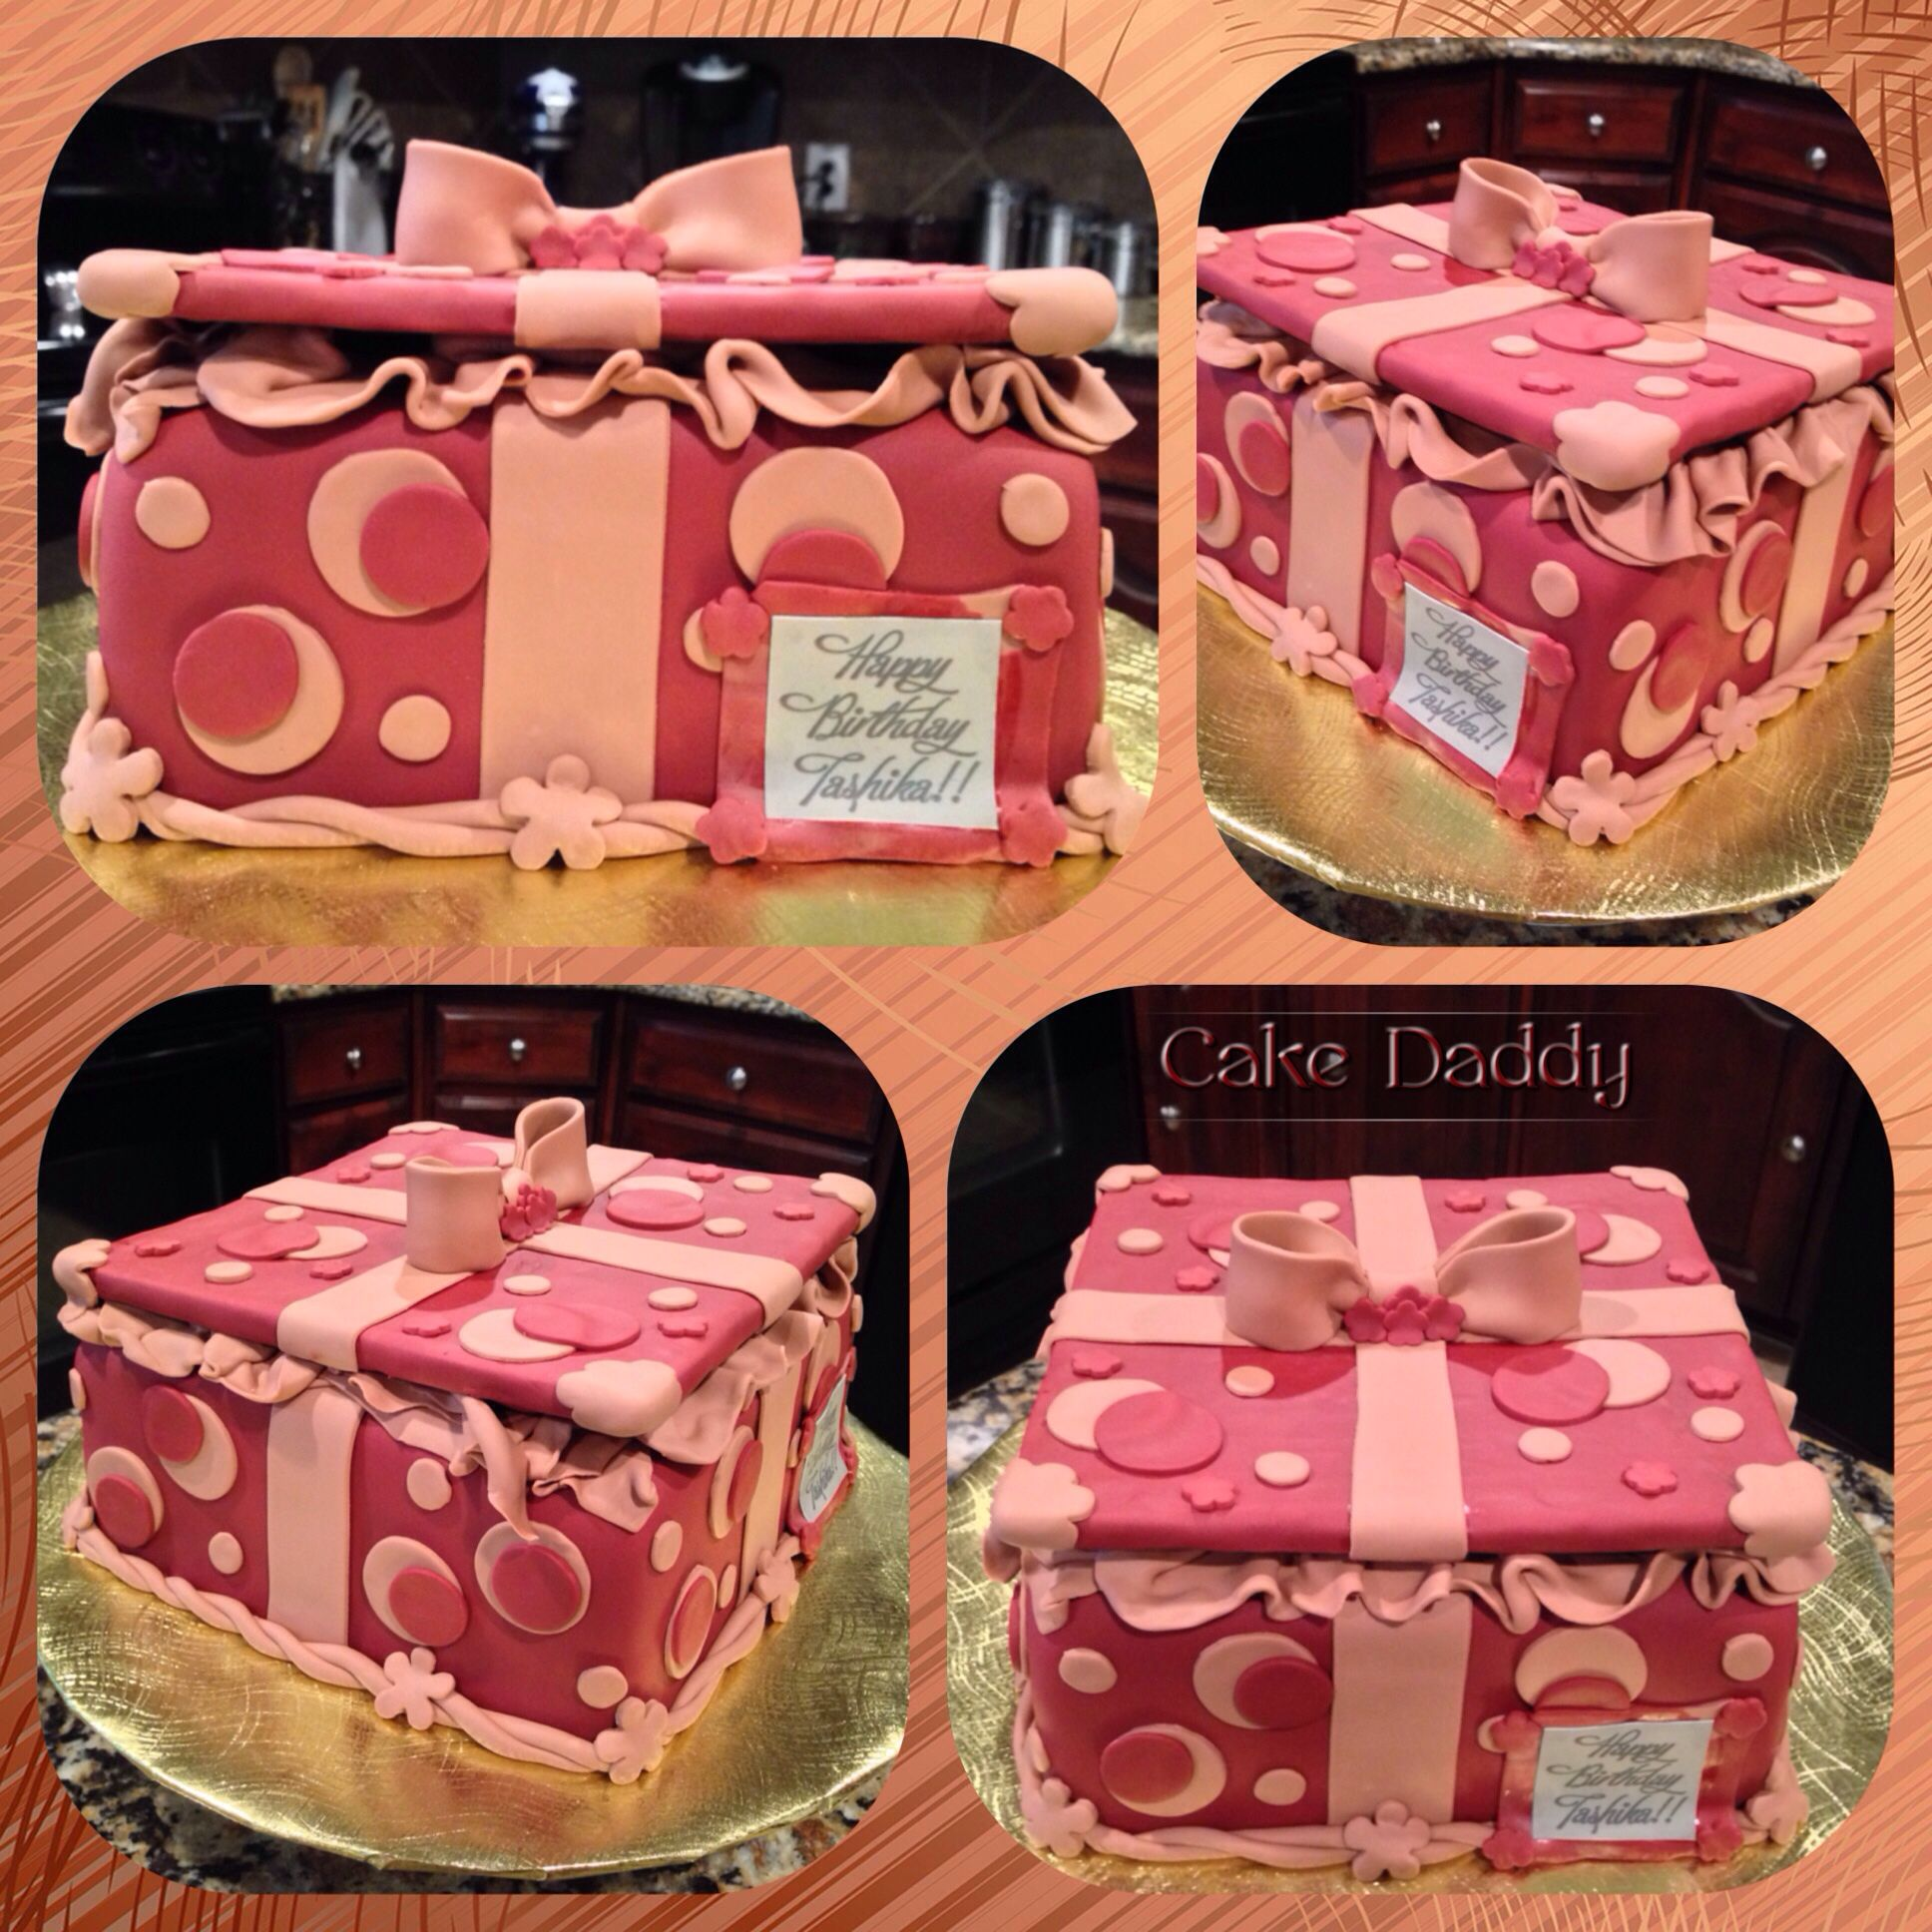 Gift box birthday cake  Custom Cakes by Cake Daddy  Pinterest